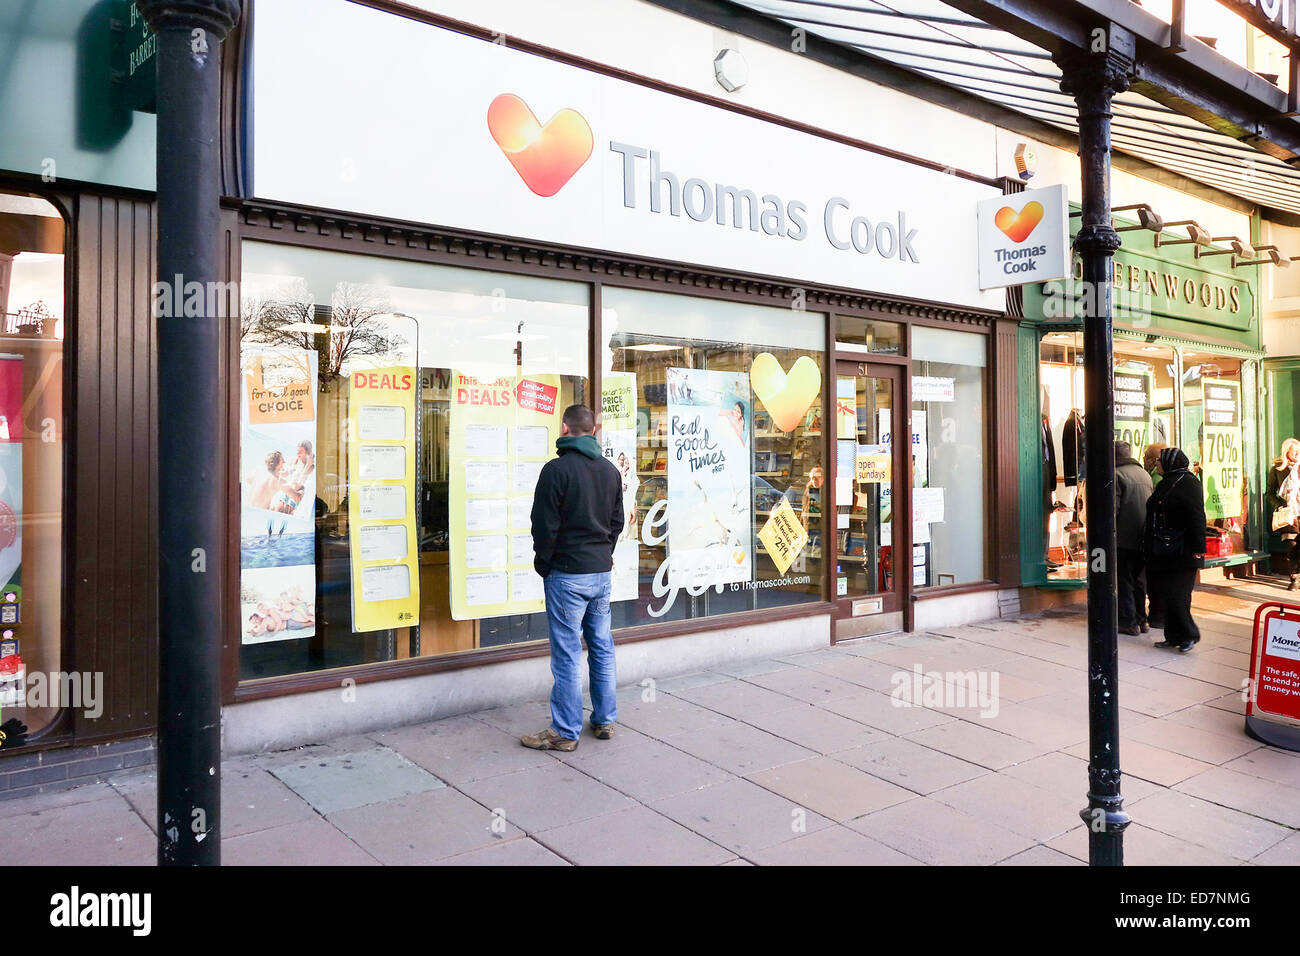 Thomas Cook travel agent on a high street - Stock Image